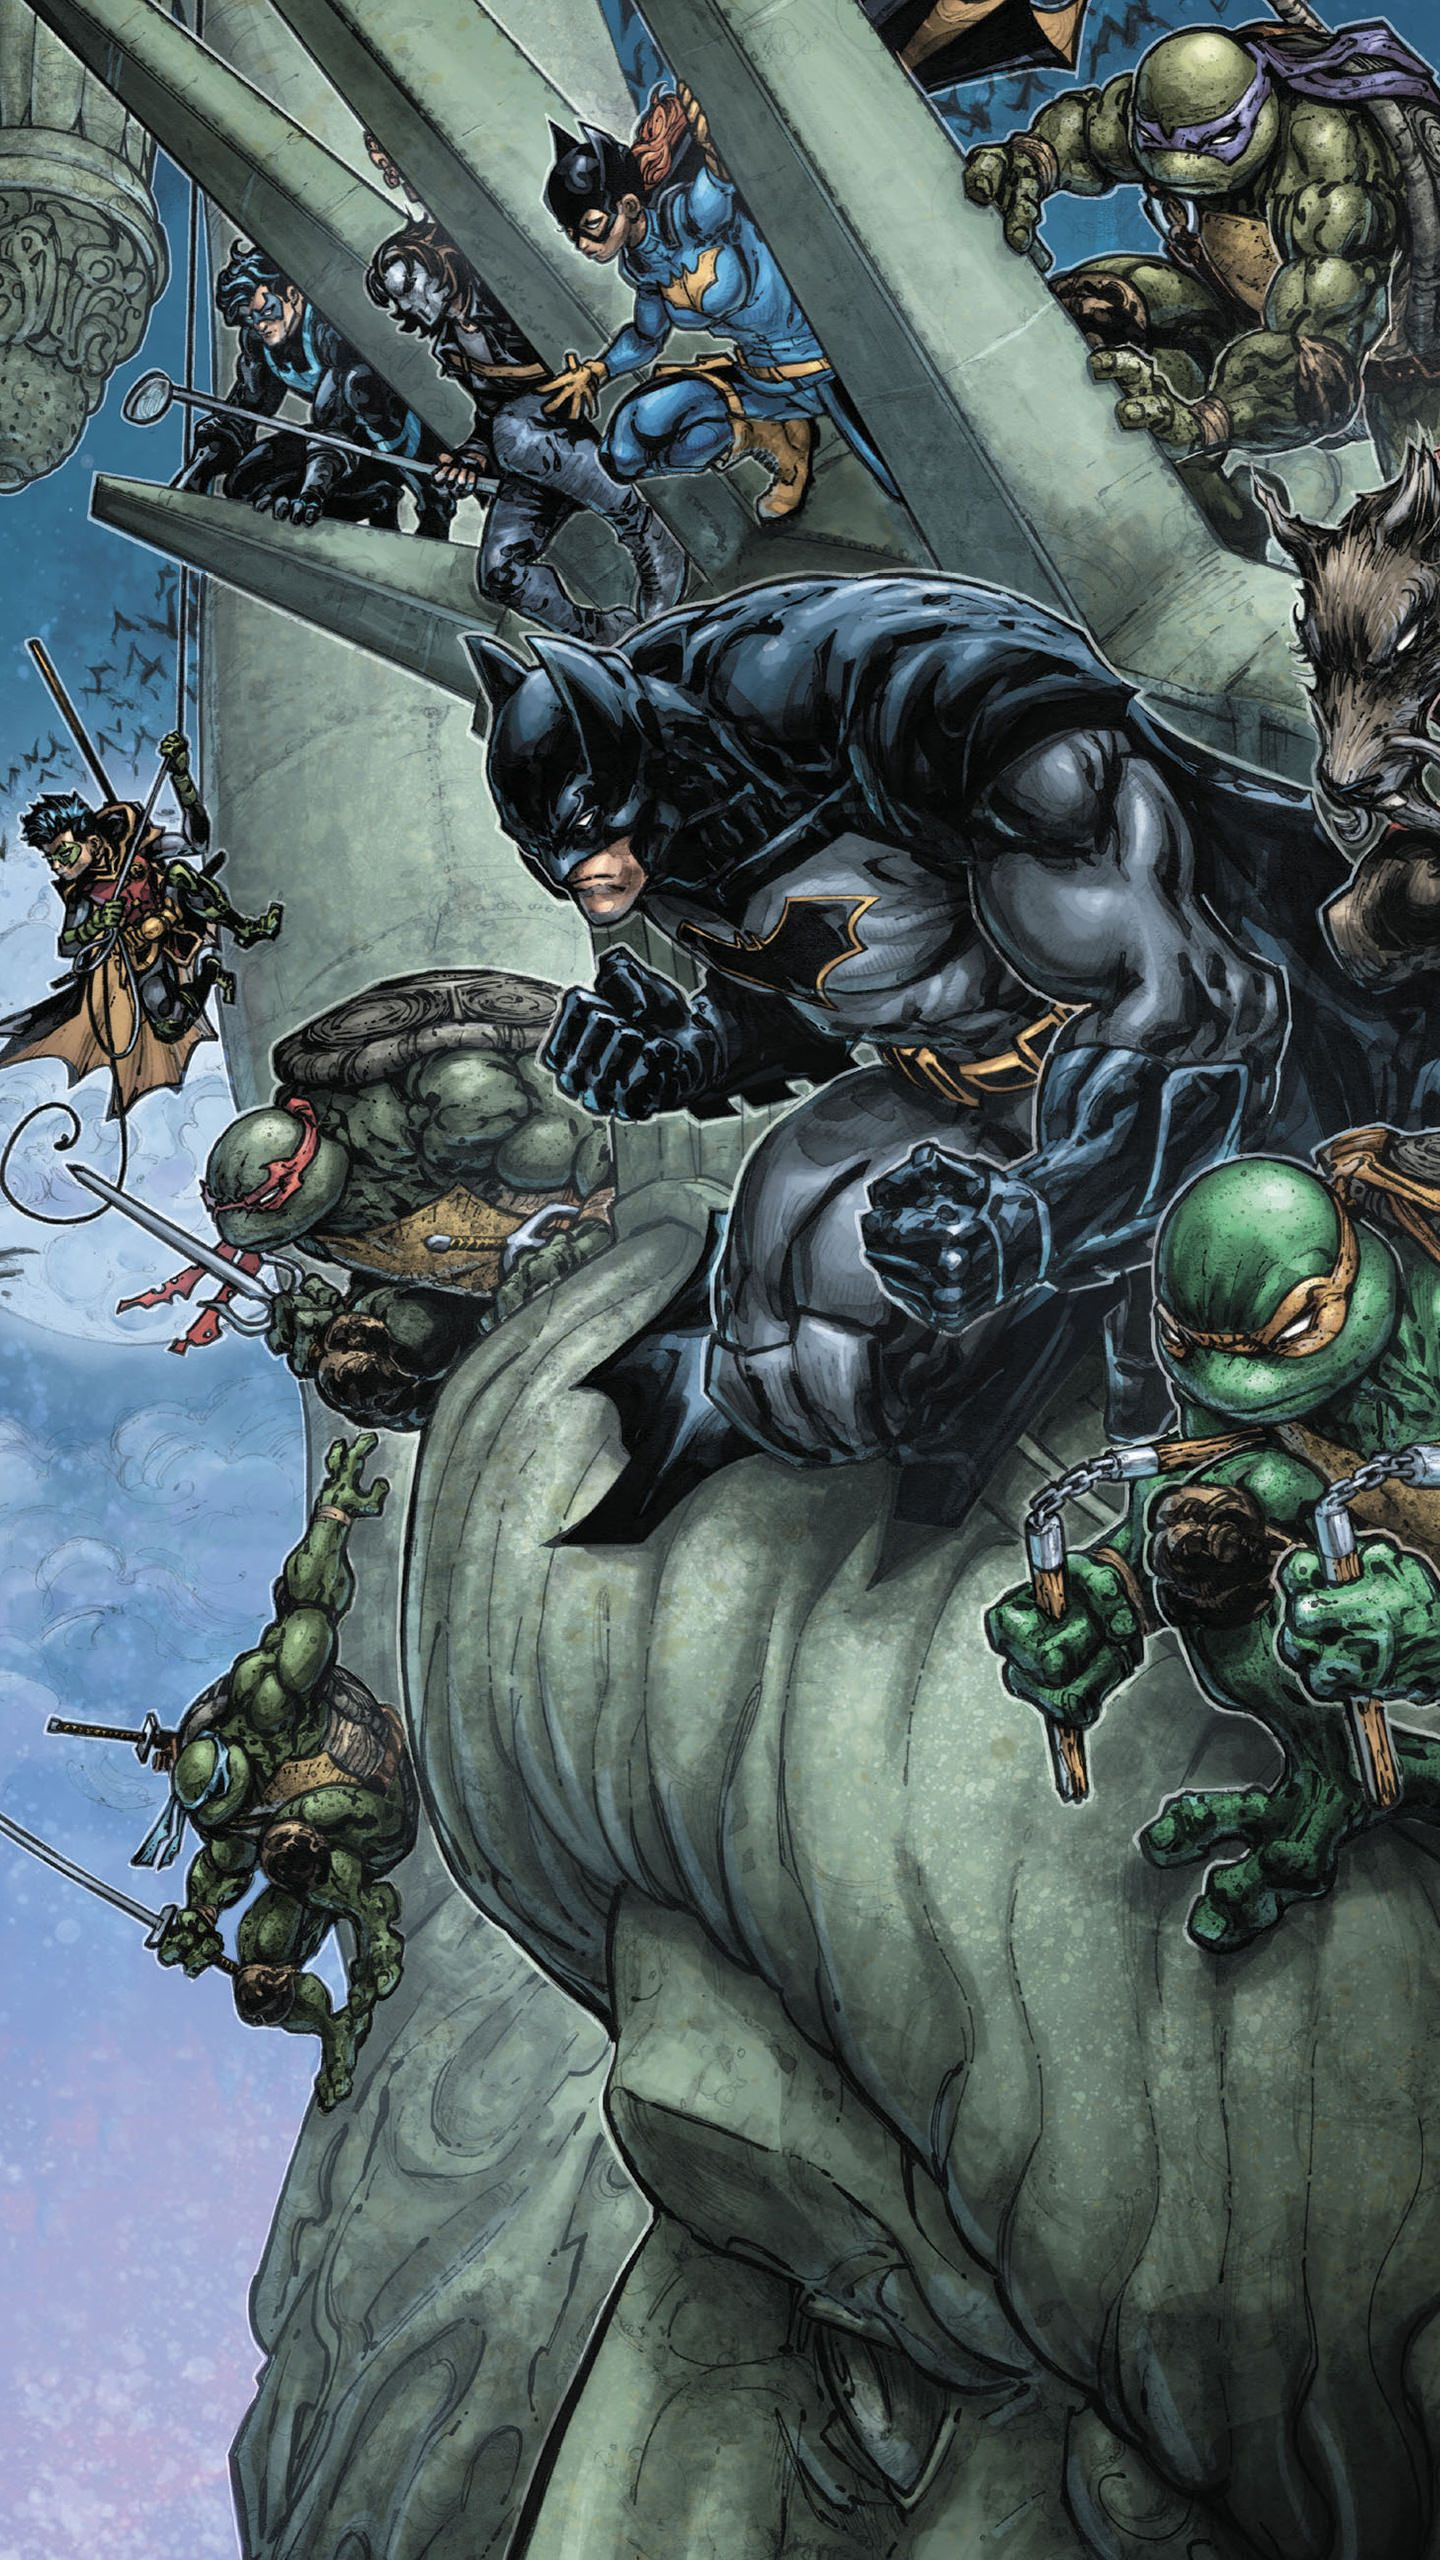 Pin By Pon Lynn On Dc In 2020 With Images Batman Tmnt Ninja